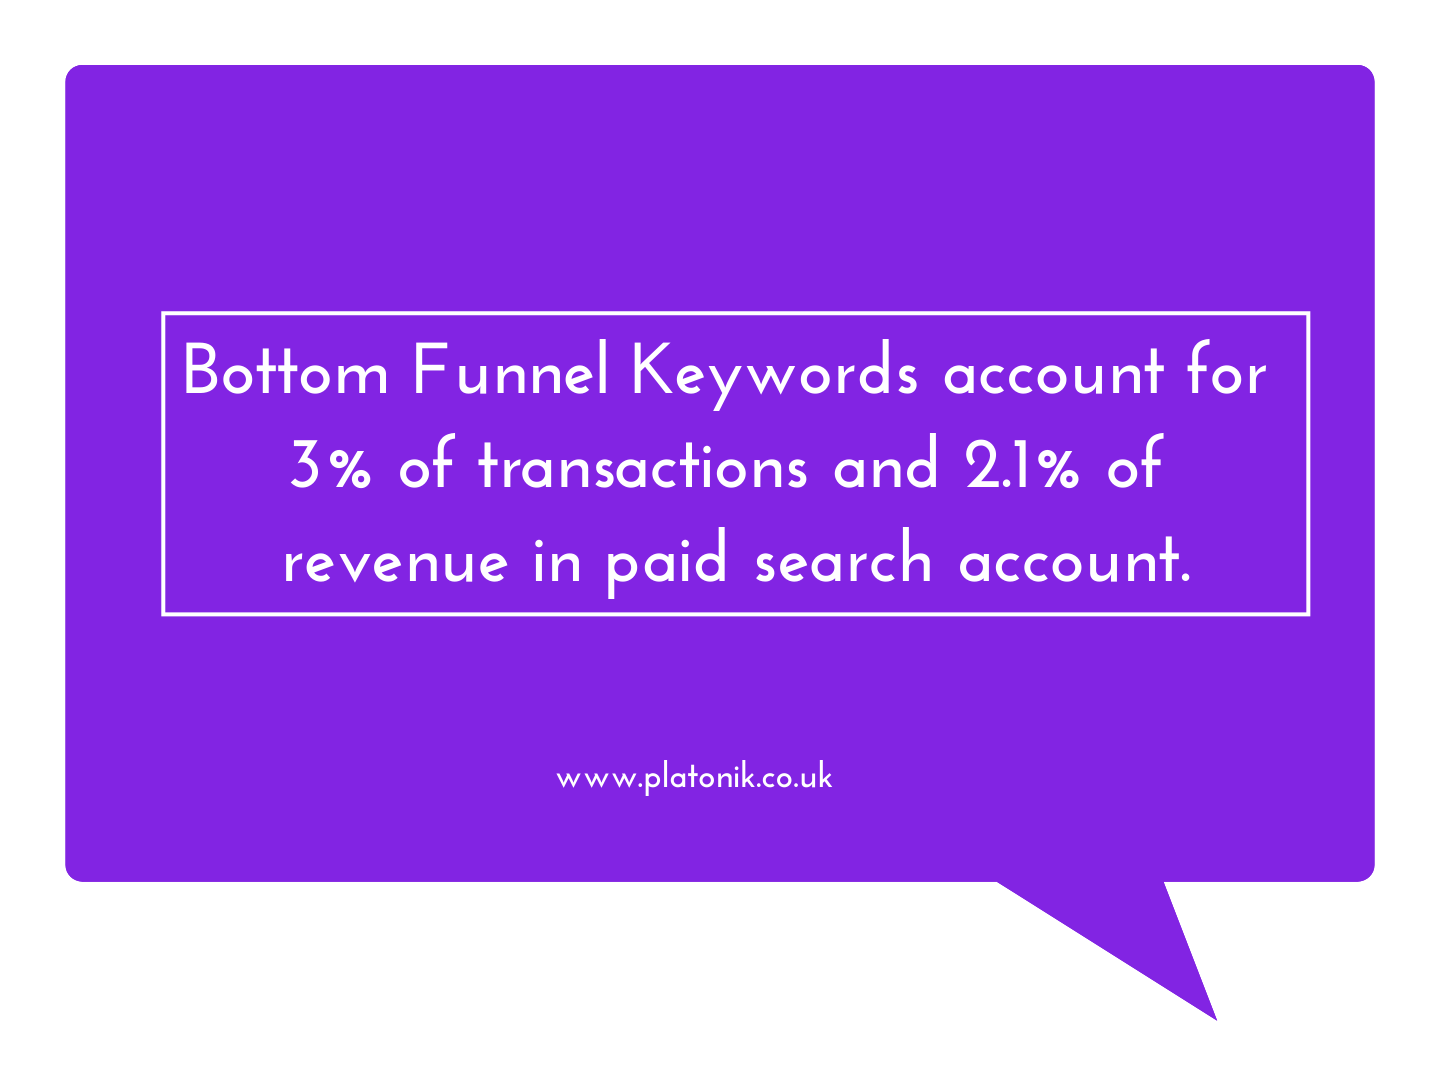 lower funnel keywords account for 3% of transactions and 2.1% of revenue in a paid search account.